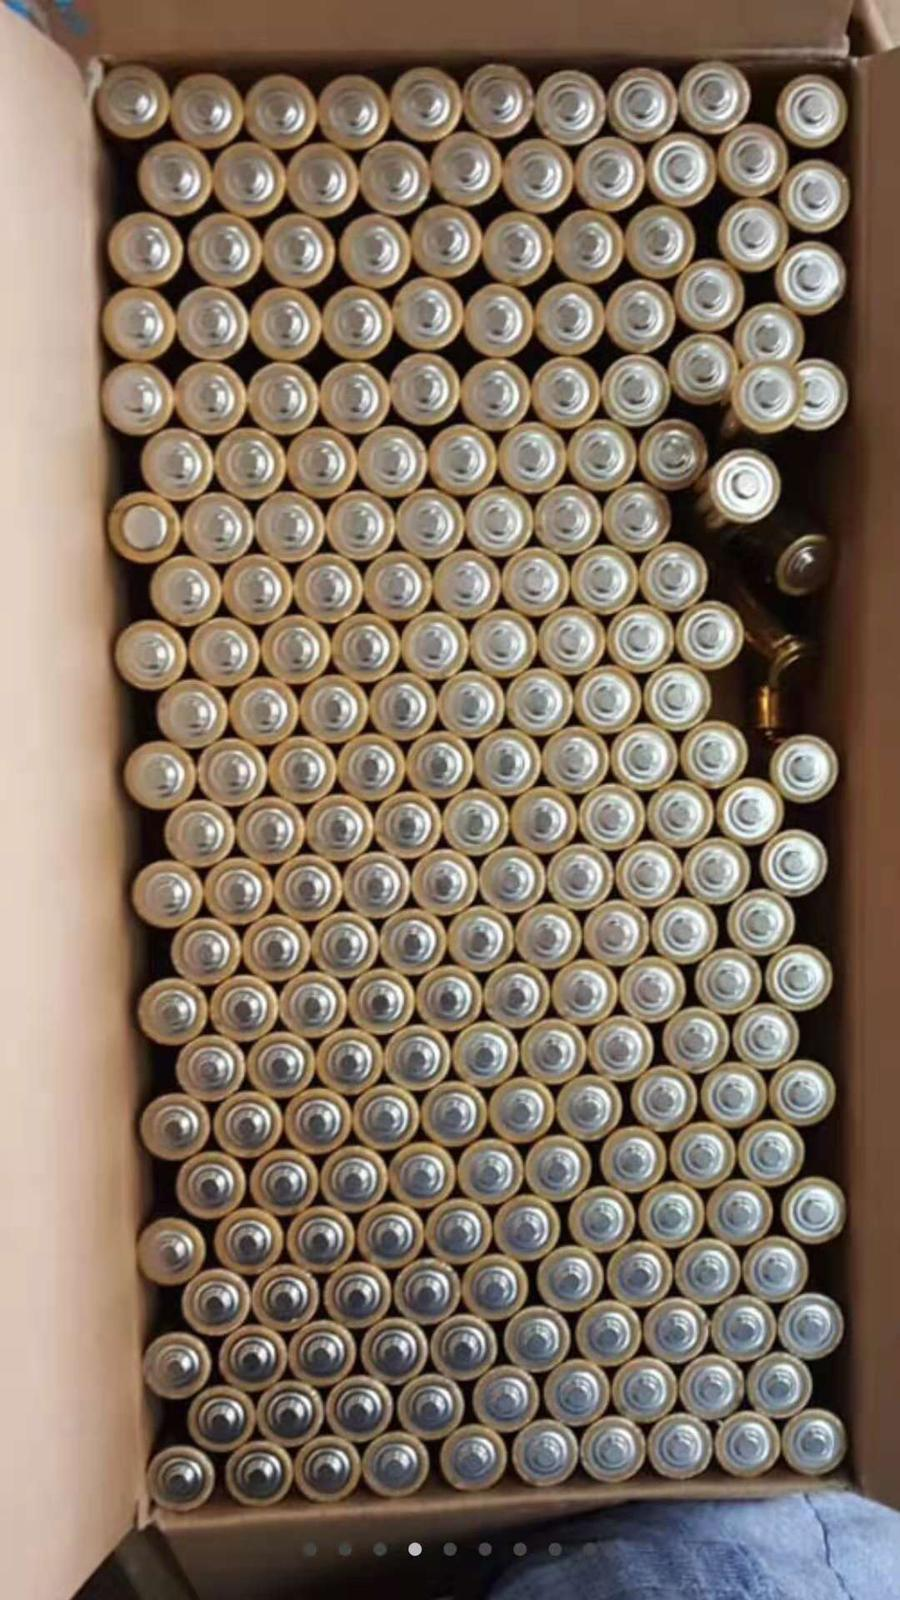 30241 - Alkaline batteries Hong Kong